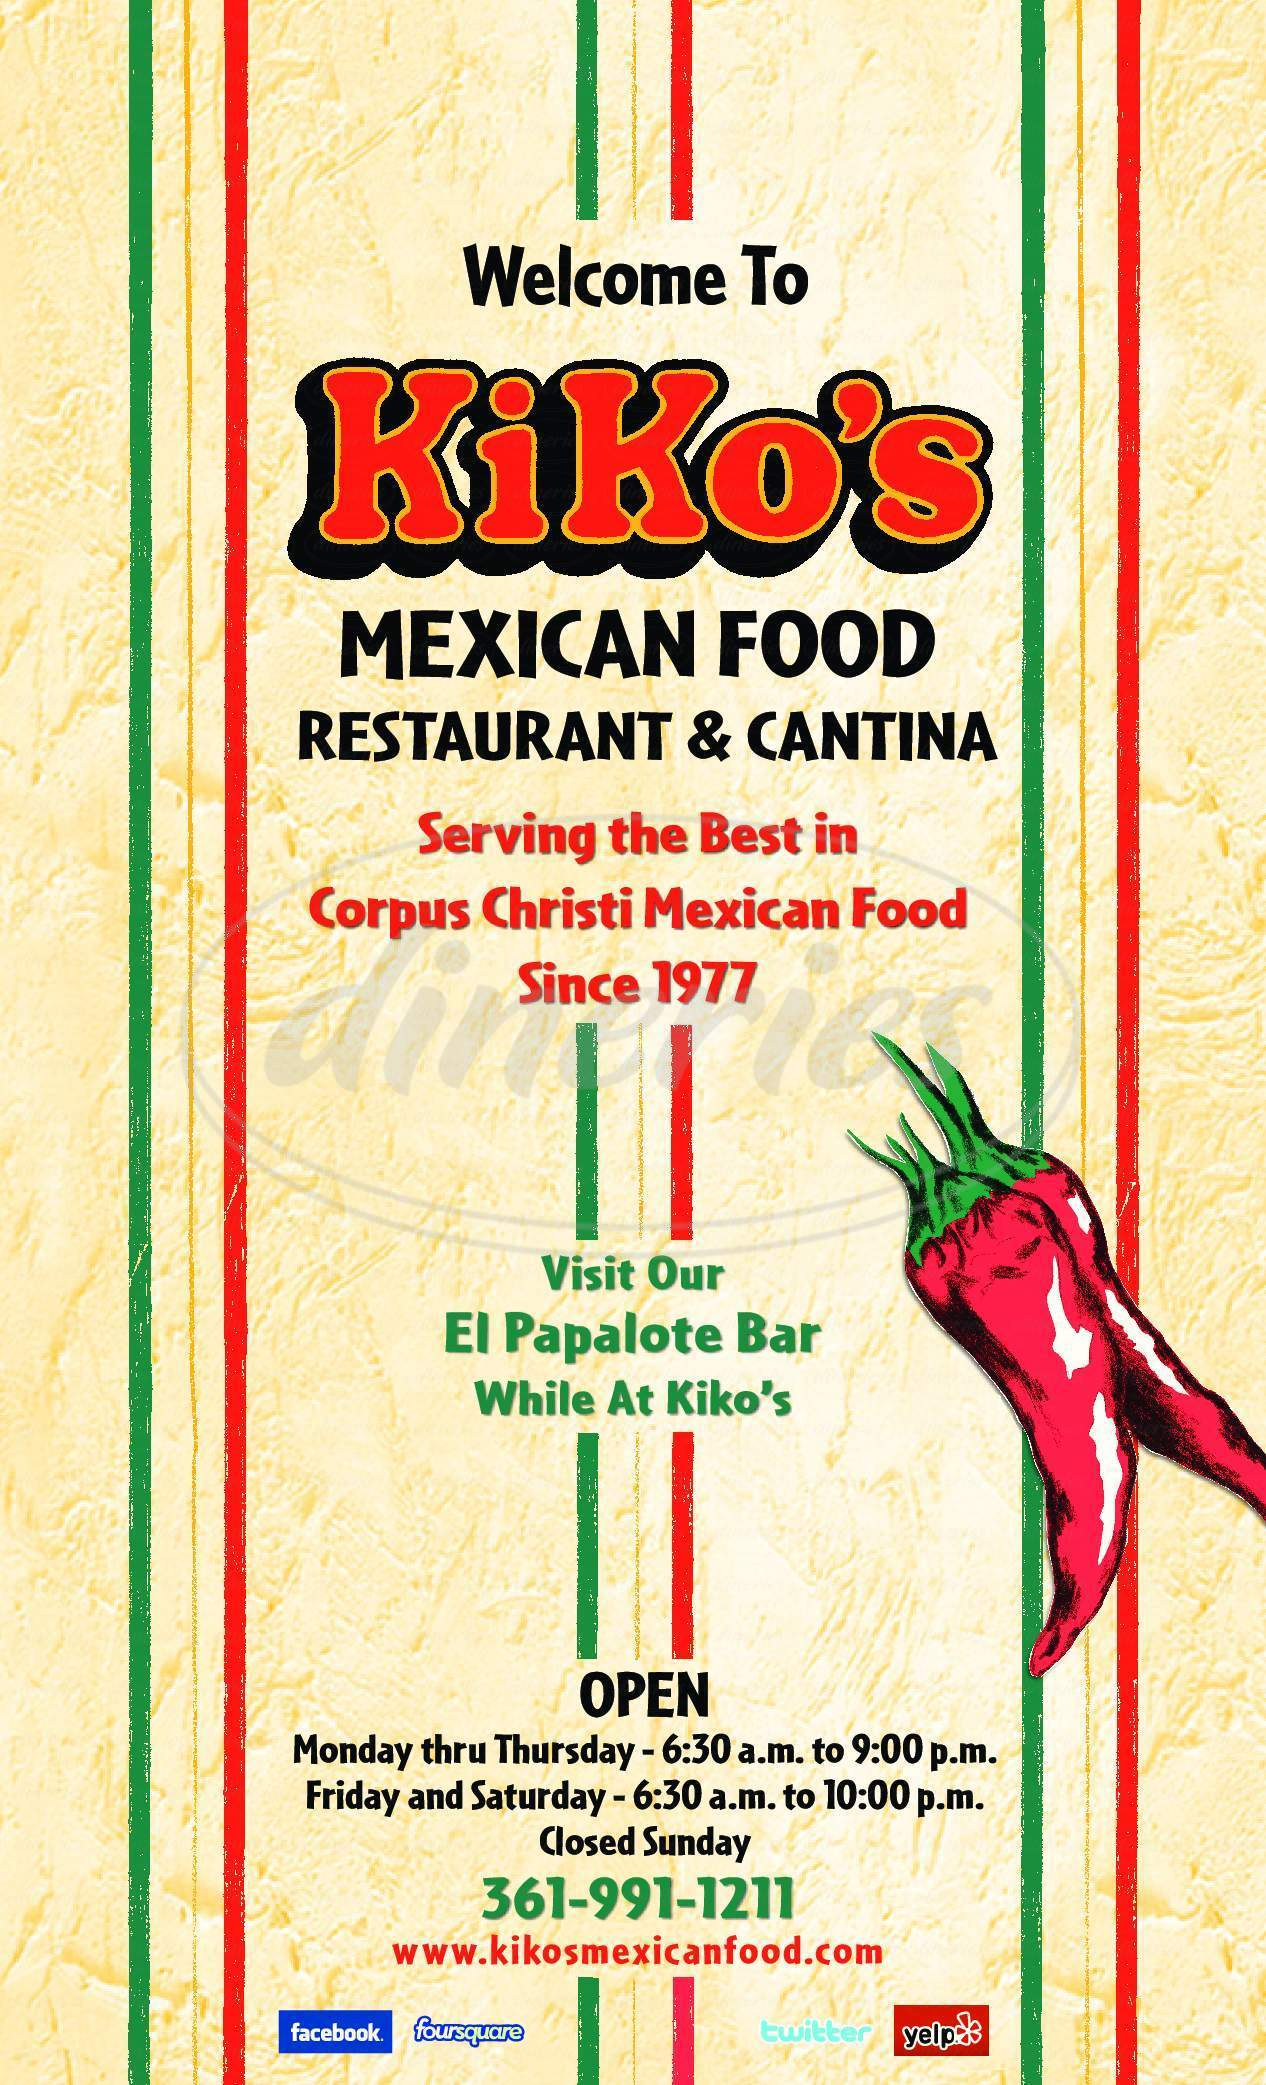 menu for Kiko's Mexican Food Restaurant & Cantina